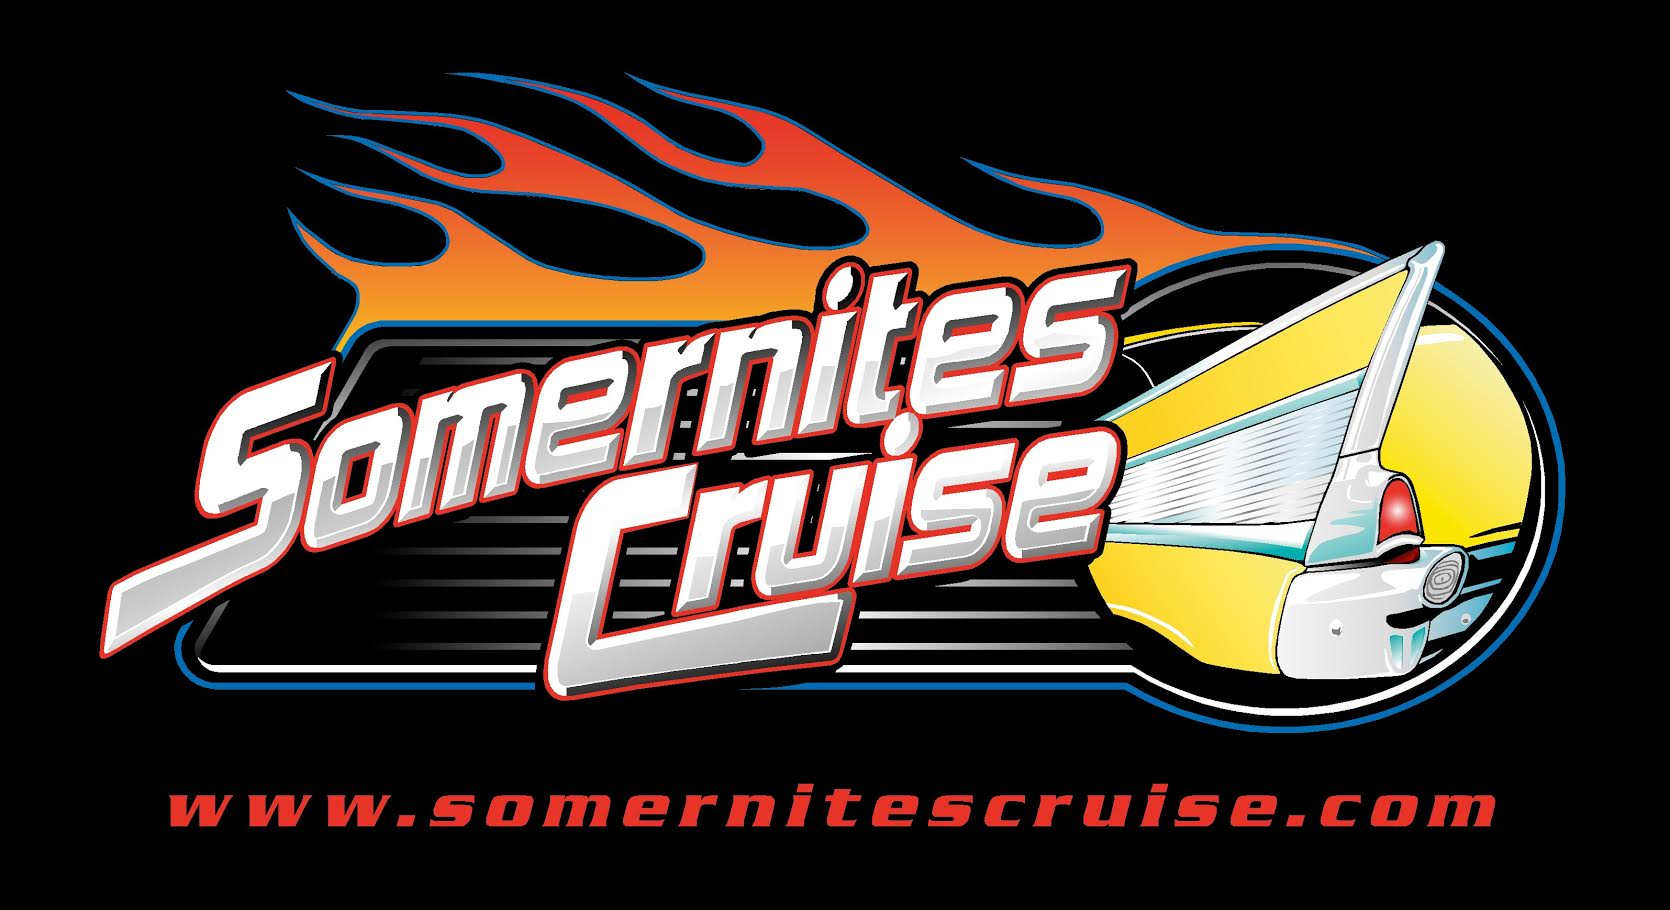 Somernites Cruise, is the largest monthly classic car cruise in the state of Kentucky.